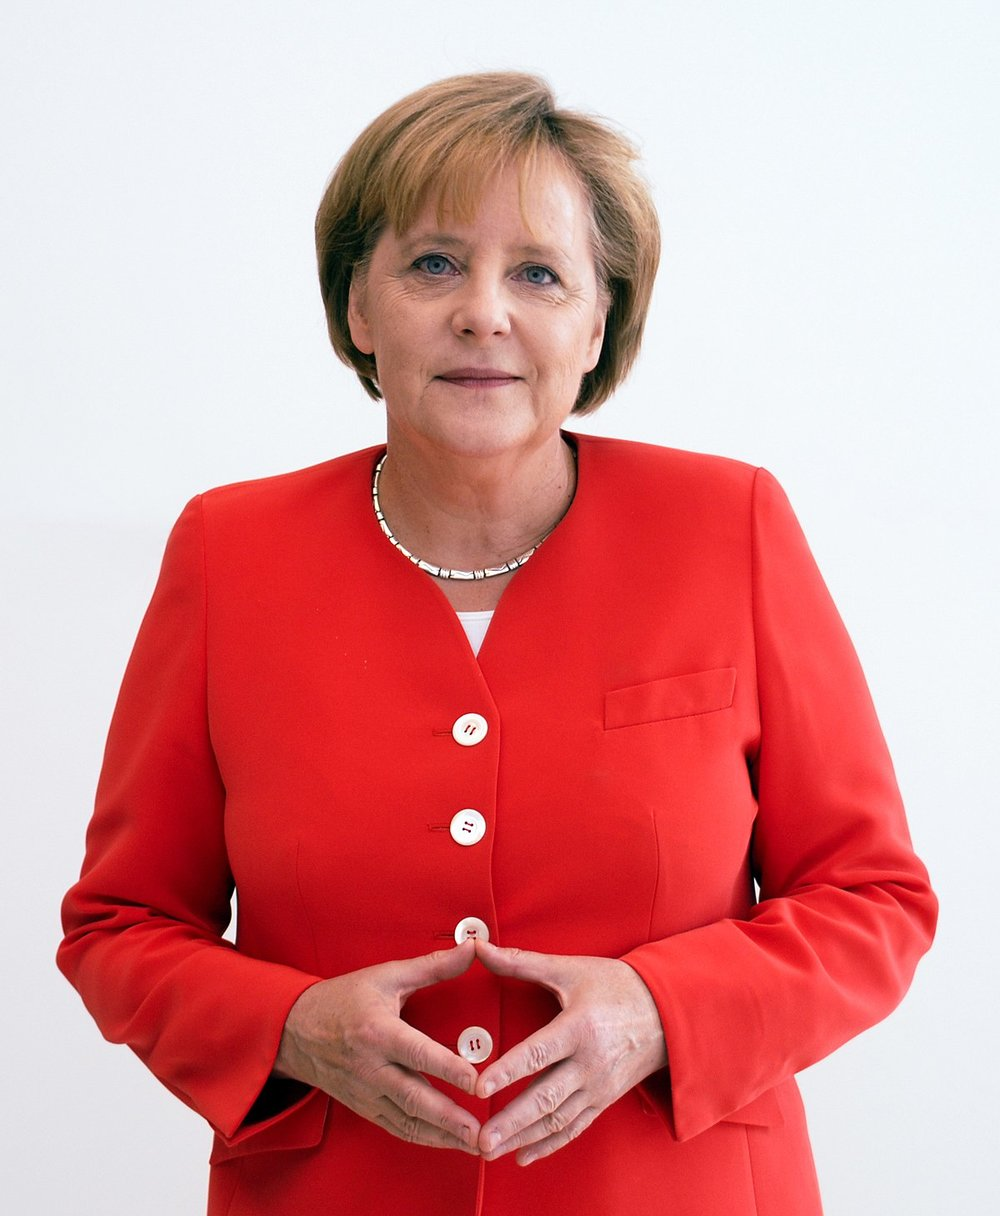 GERMAN ELECTION 2017    After its election on November 24th, Germany will retain Angela Merkel – the pragmatic conservative who has already been in office for 12 years as its Chancellor, in spite of historic losses for her party in part thanks to the rose of the far-right 'Alternative für Deutschland' (AfD), who will enter the Bundestag (the German parliament); for the first time since their founding...  Alex Beard